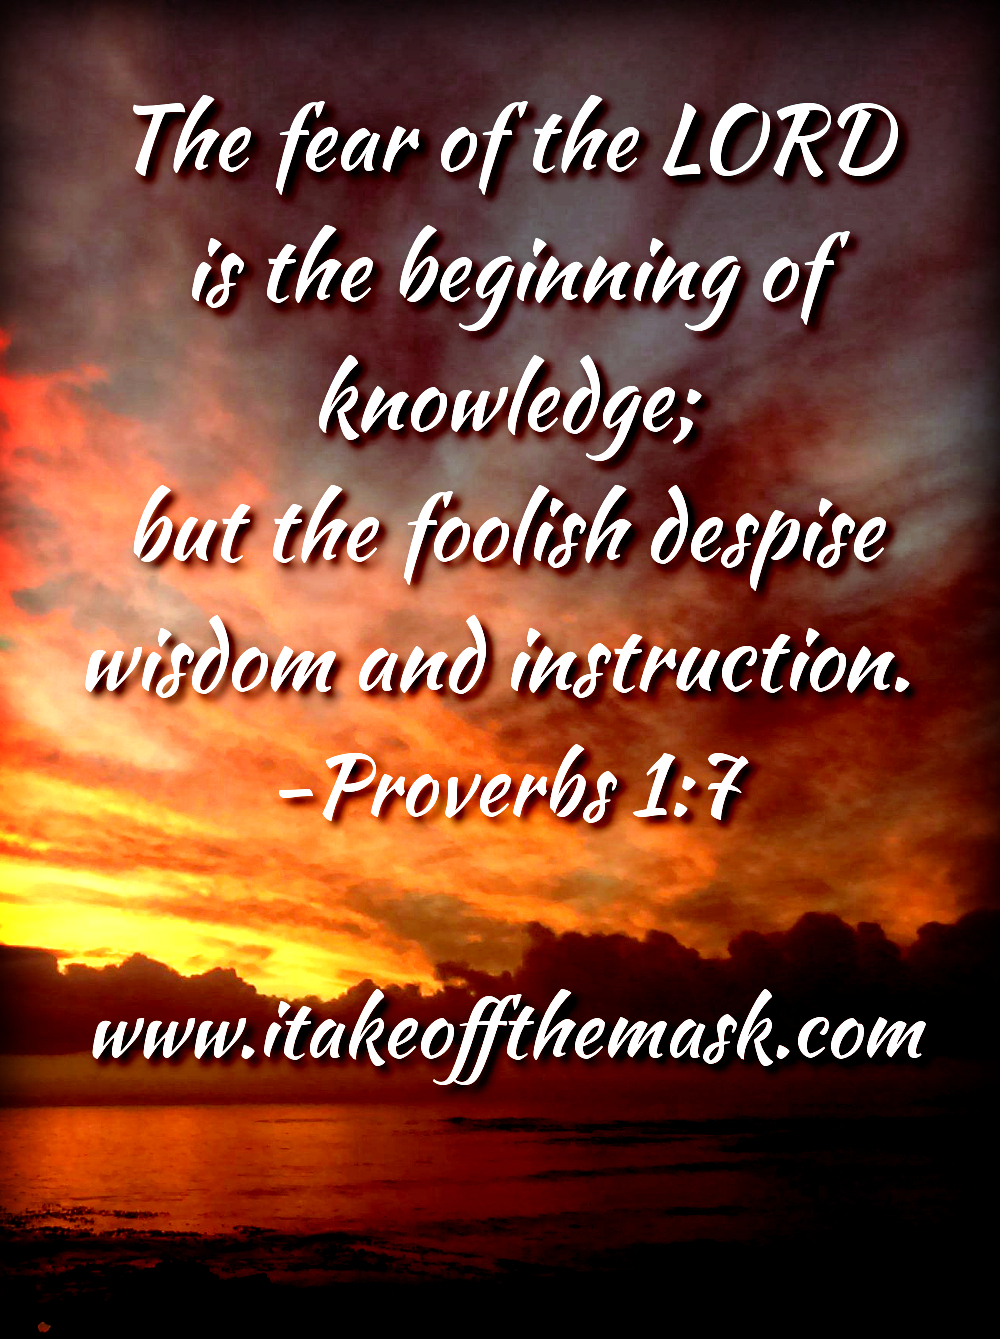 A Higher Wisdom - Quotes, Poems, Prayers, Books and Words ...